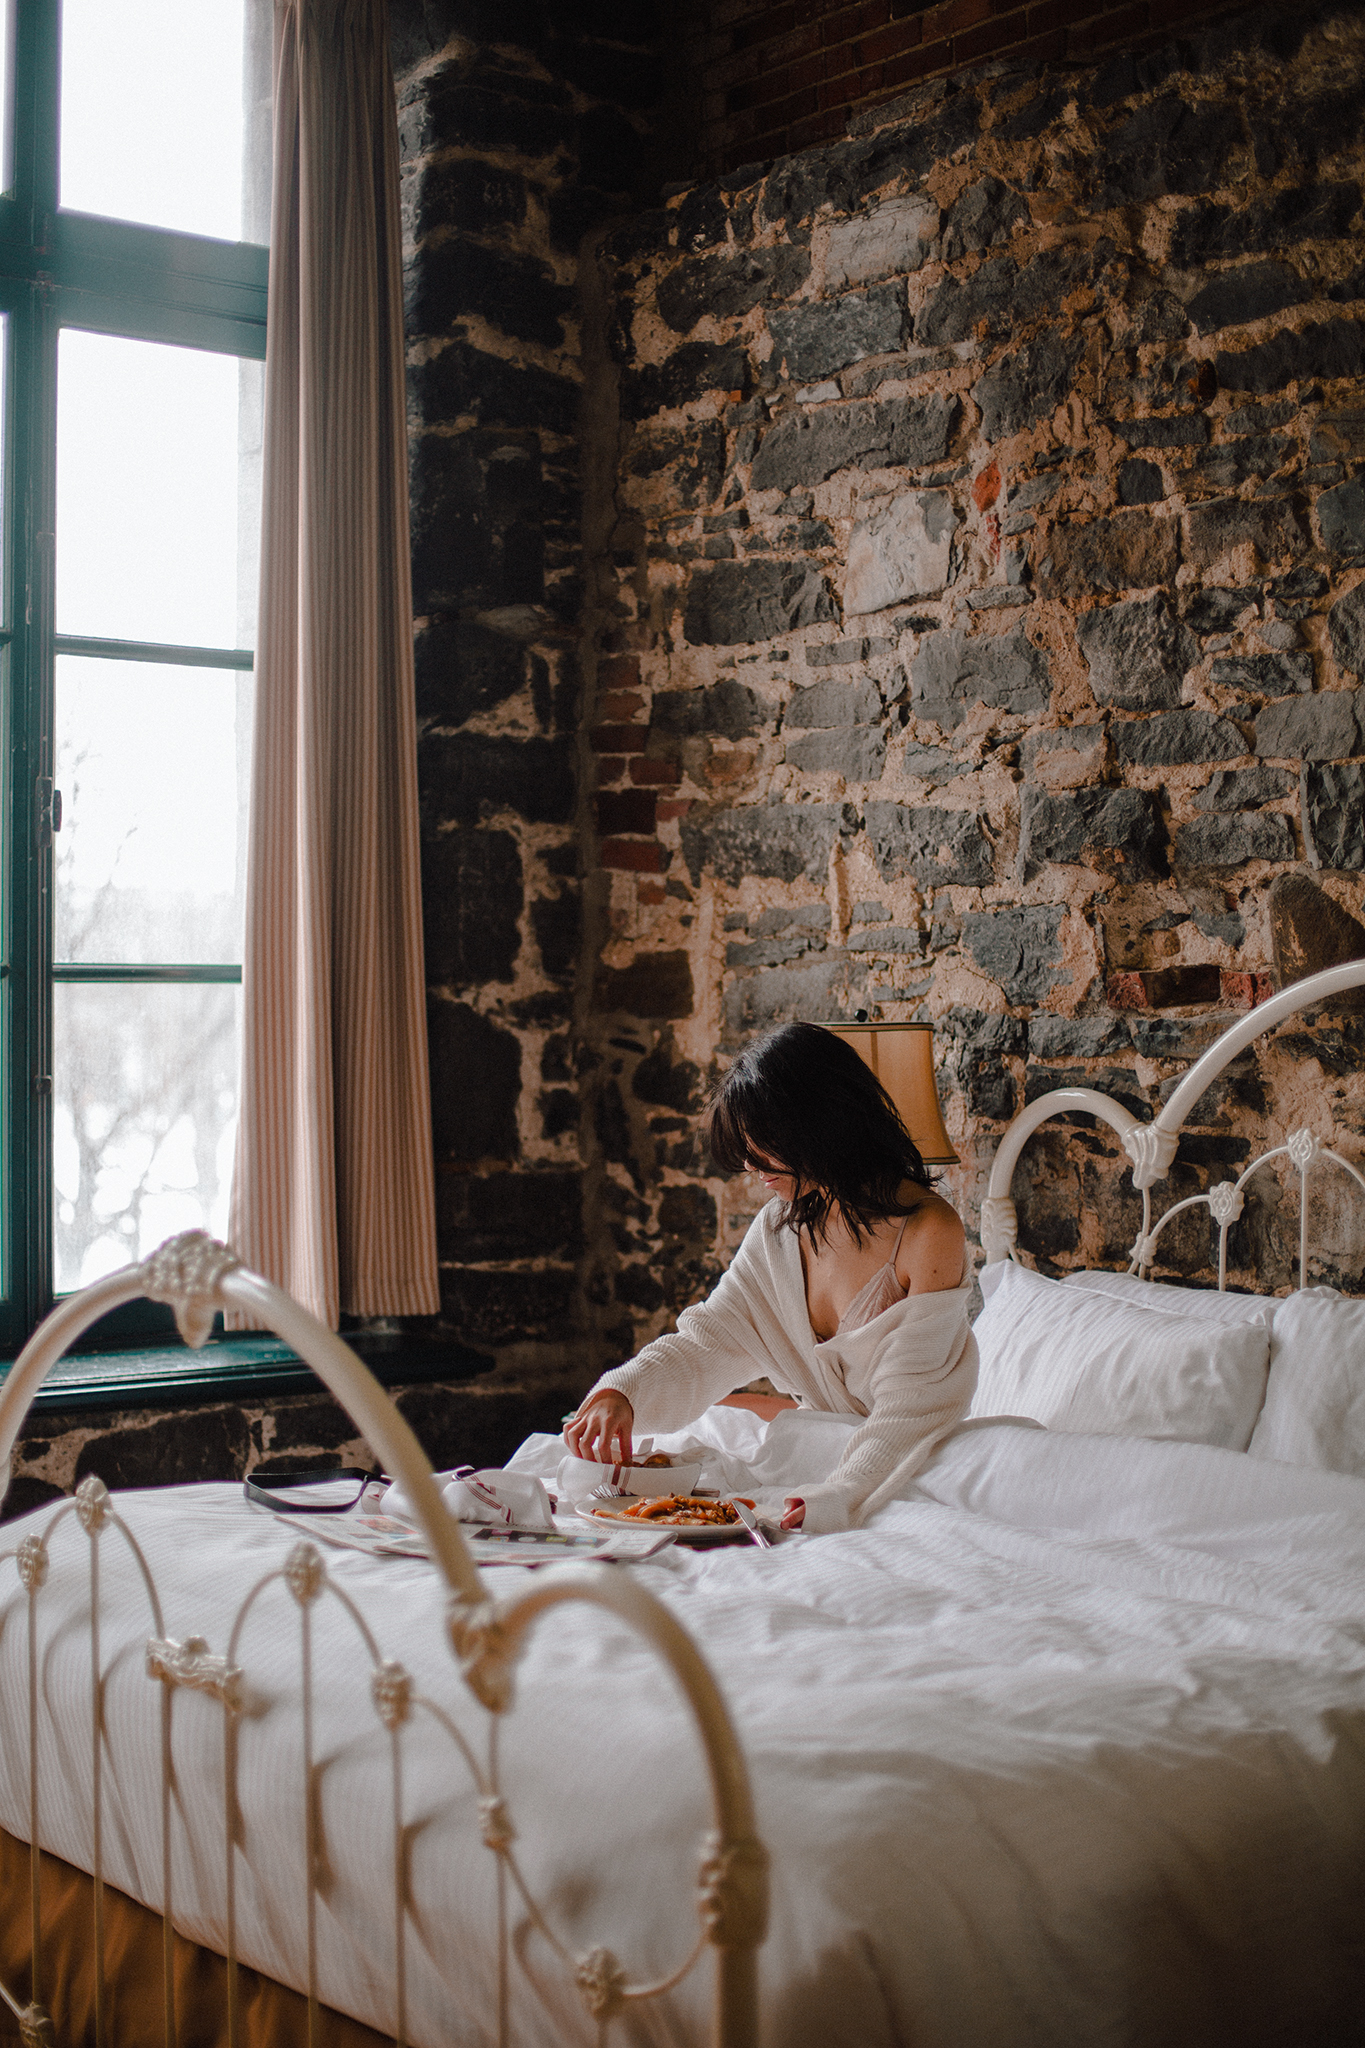 Breakfast in bed on a Sunday at Auberge du VIeux-Port in the old port of Montreal, Québec